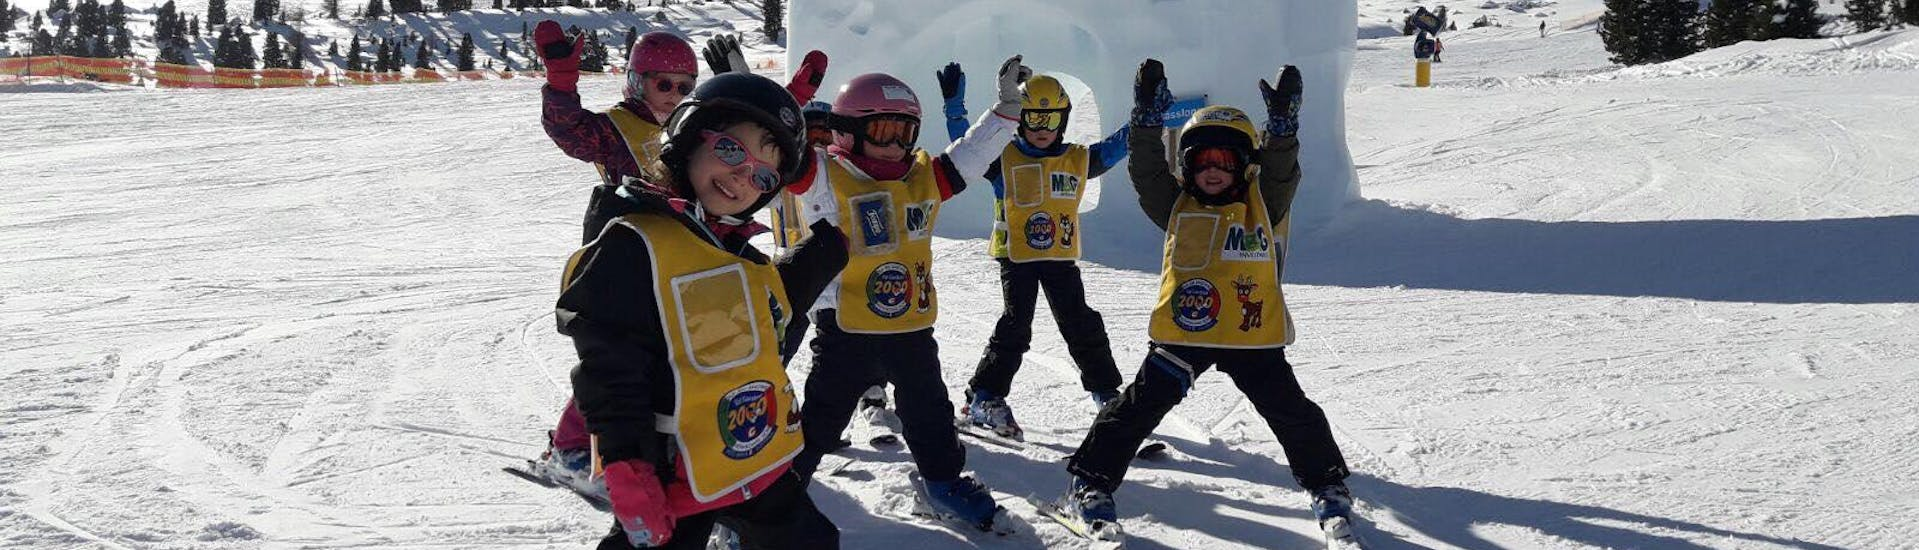 Private Ski Lessons for Kids of All Levels with Scuola Sci 2000 Selva - Hero image